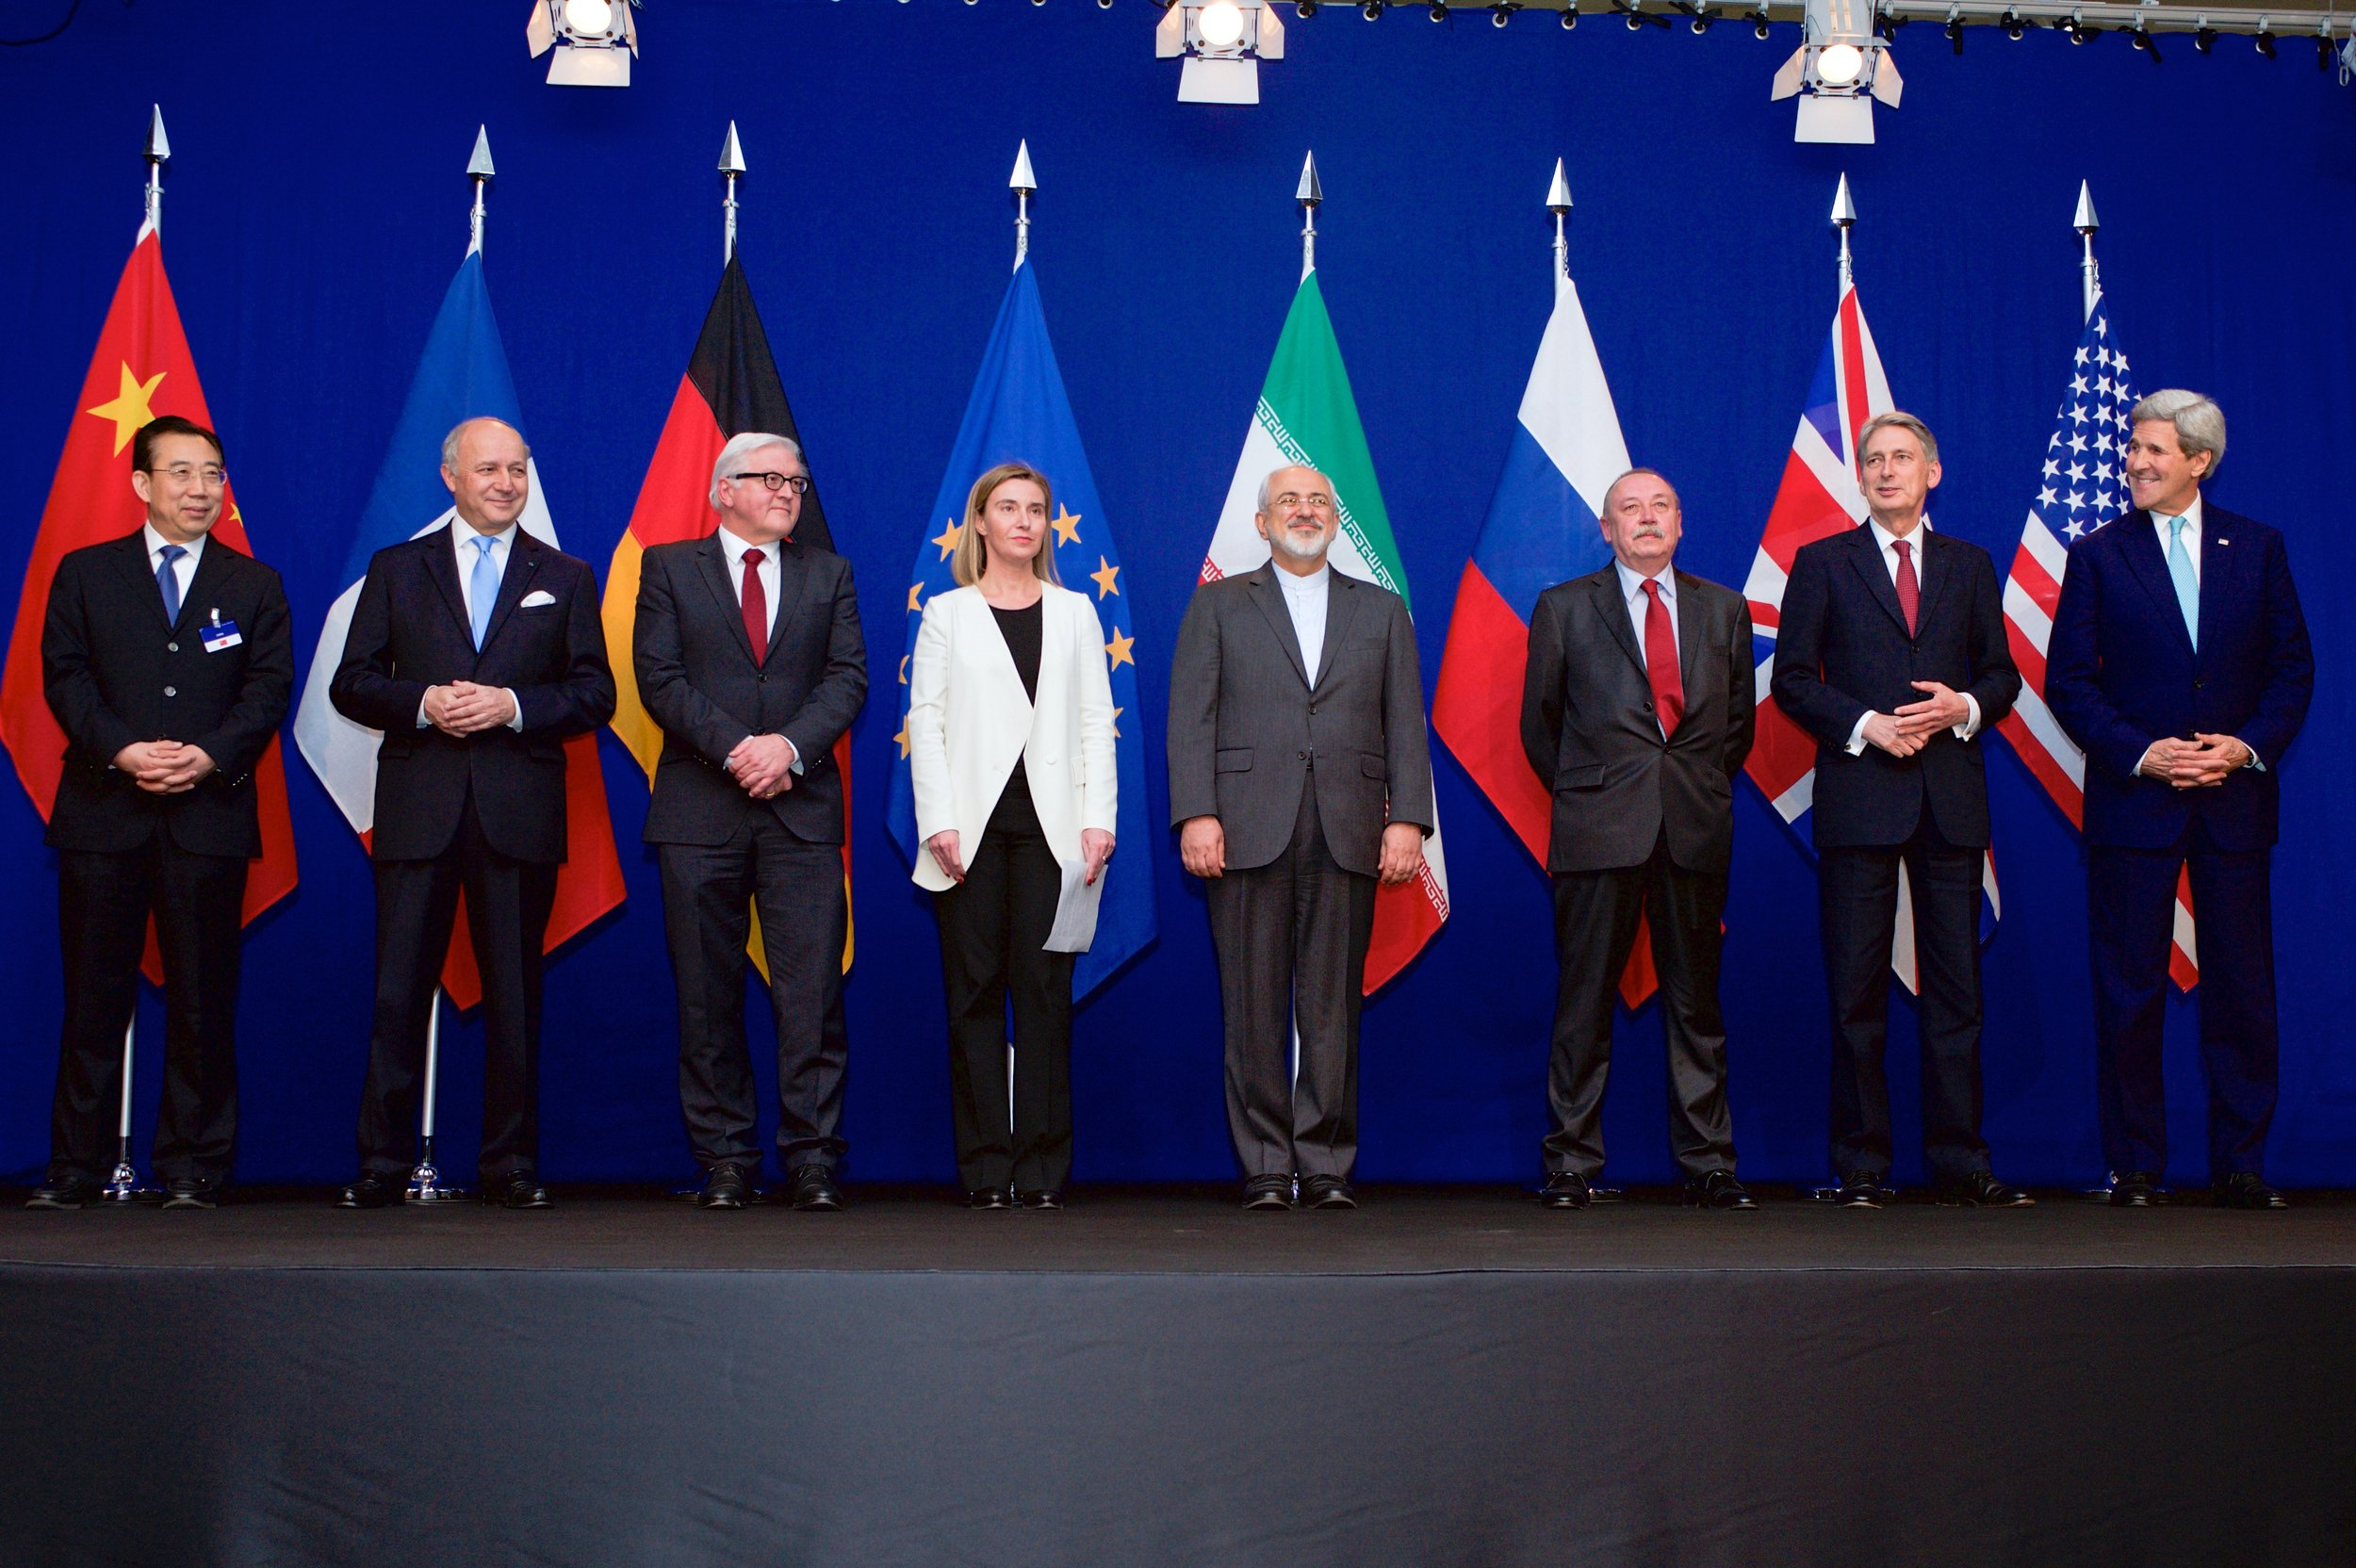 "Hailong Wu of China, Laurent Fabius of France, Frank-Walter Steinmeier of Germany, Federica Mogherini of the European Union, Javad Zarif of Iran, an unidentified official of Russia, Philip Hammond of the United Kingdom and John Kerry of the United States in the ""Forum Rolex"" auditorium, Switzerland. Discussing Iran Nuclear Deal."